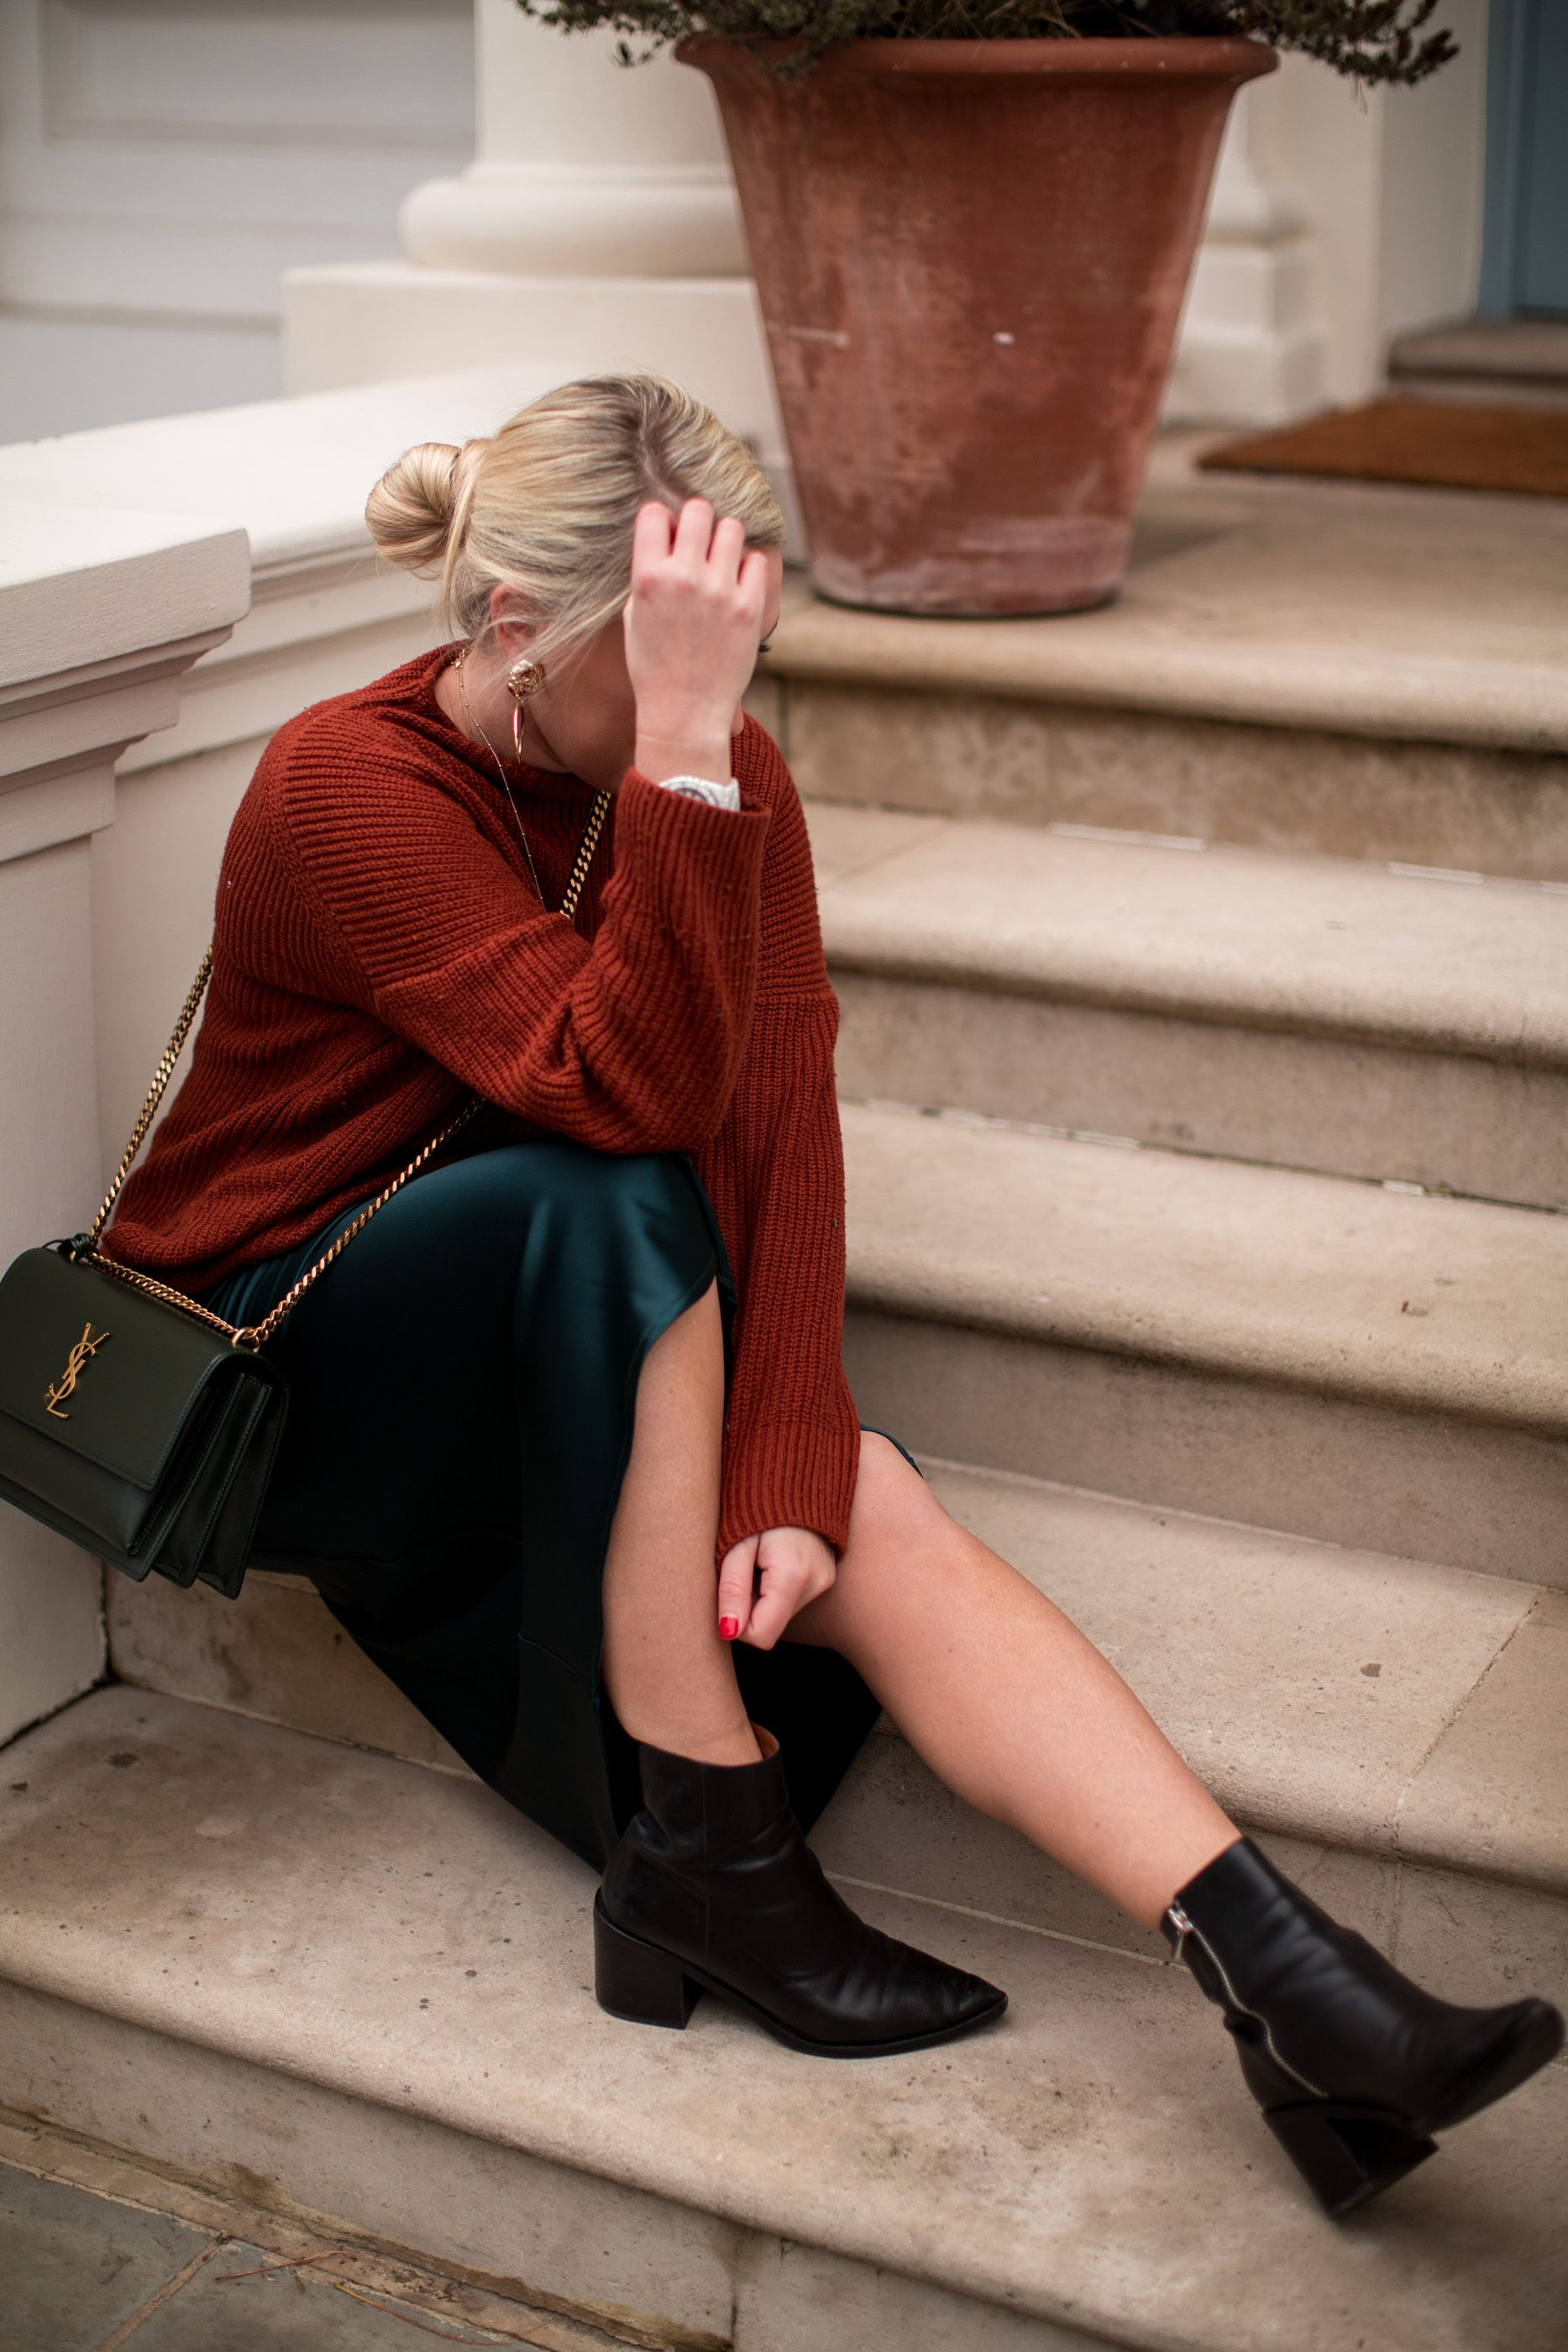 d8bebb42a2 THE TOPSHOP BIAS SKIRT & HOW TO STYLE IT   F A S H I O N   Fashion ...